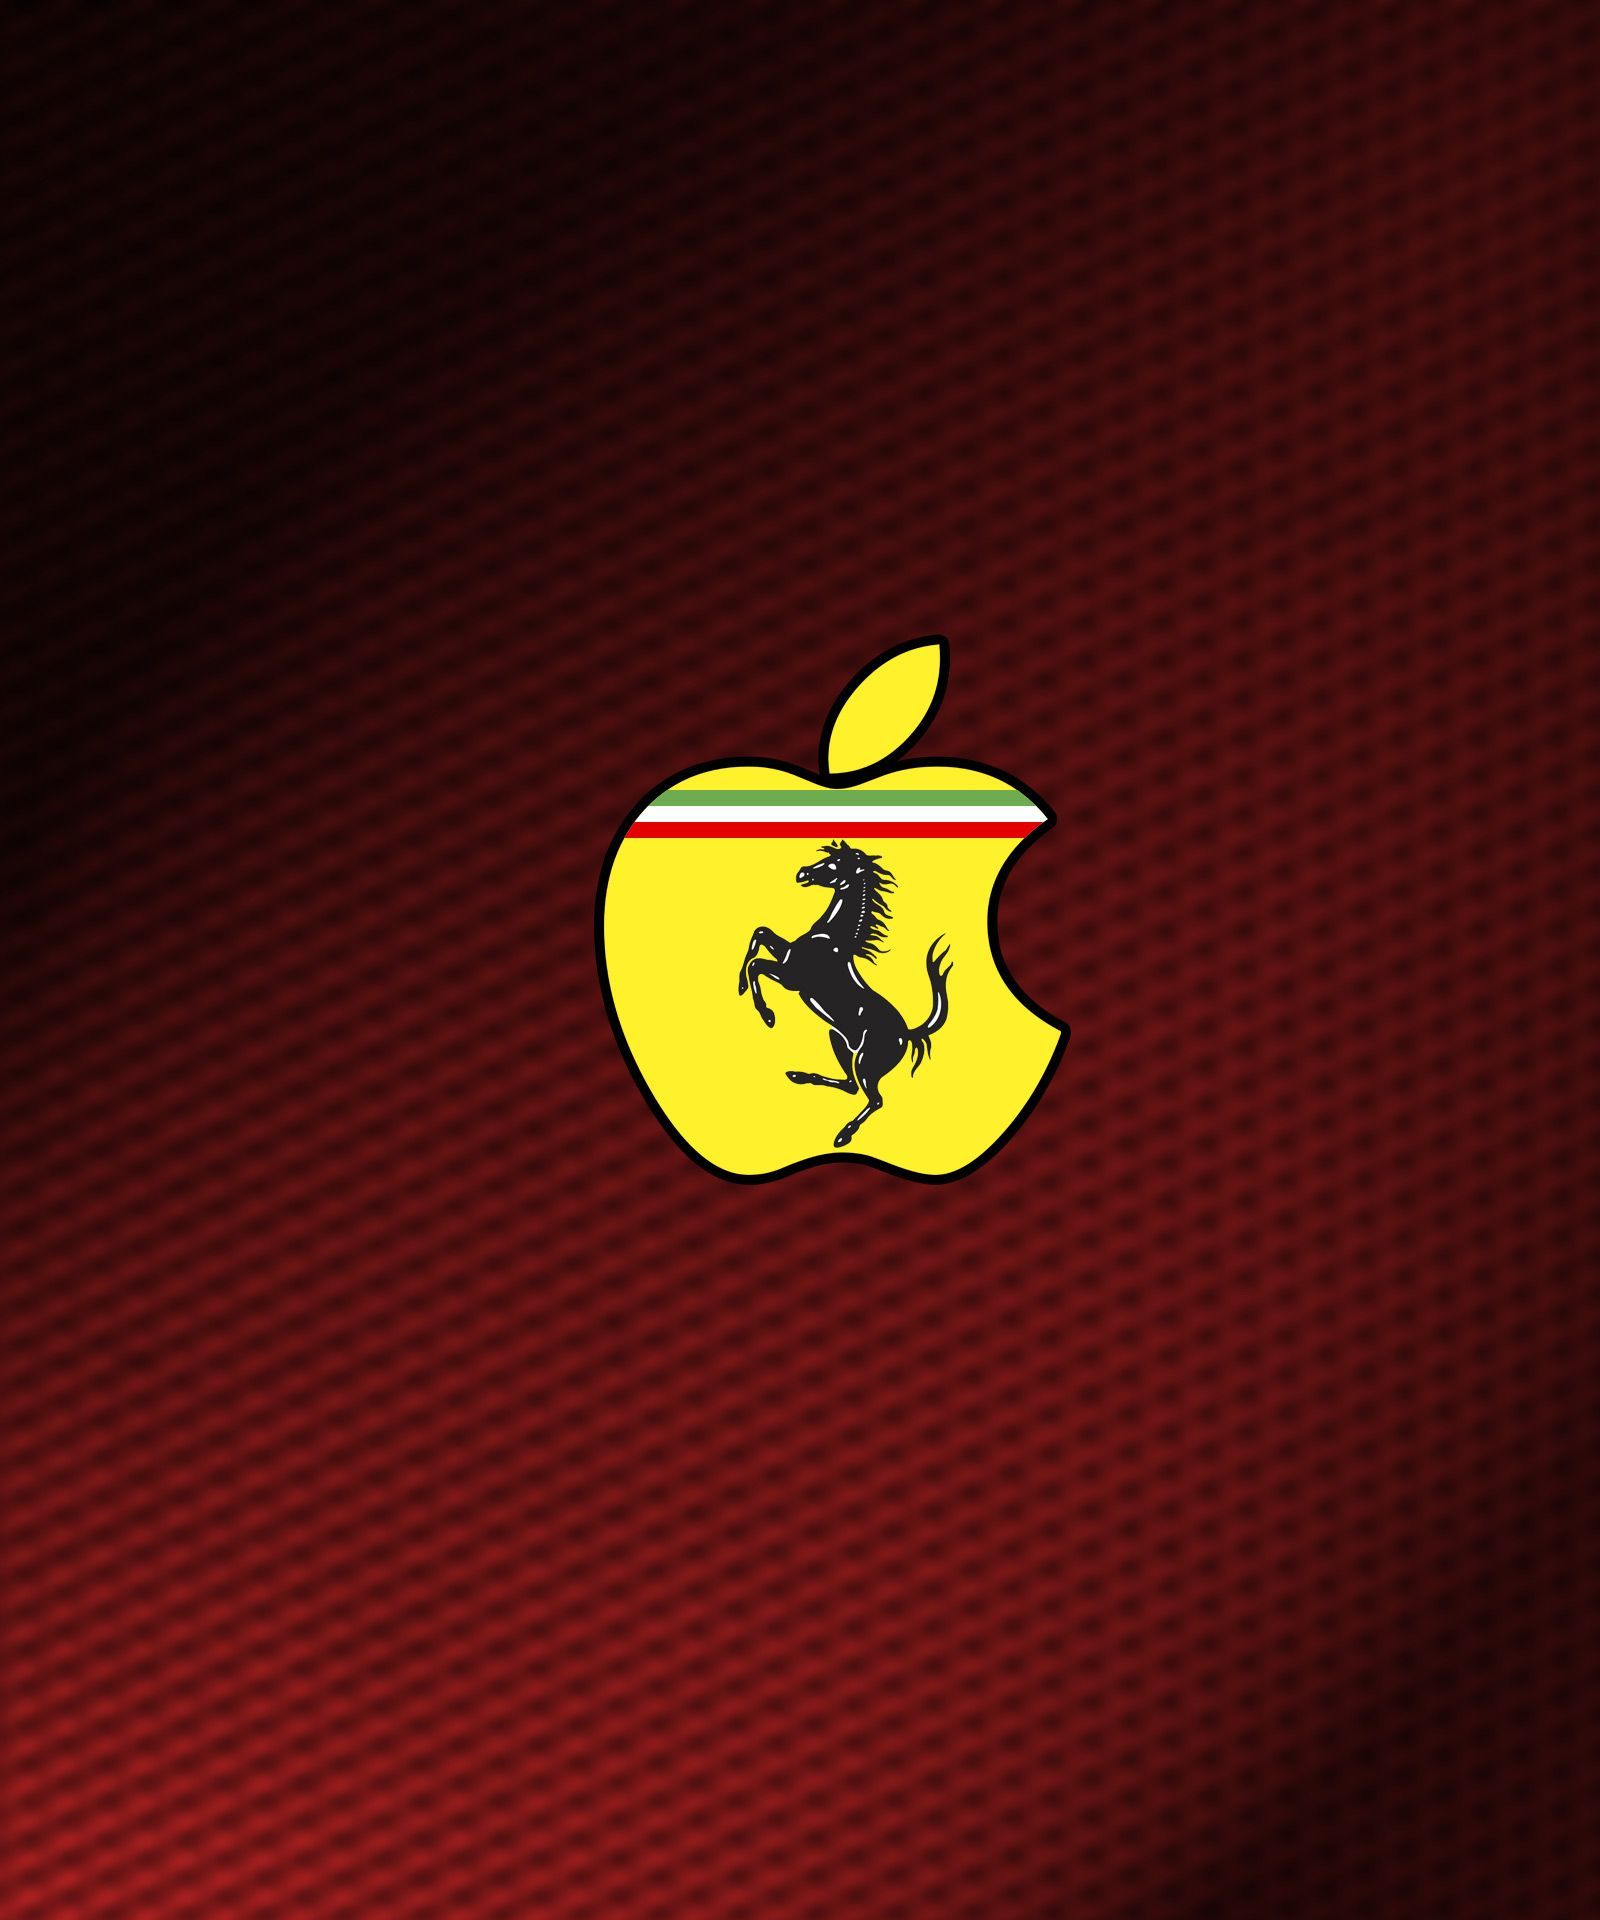 apple wallpaper | Ferrari Apple iPad Wallpaper | ipadflava.com